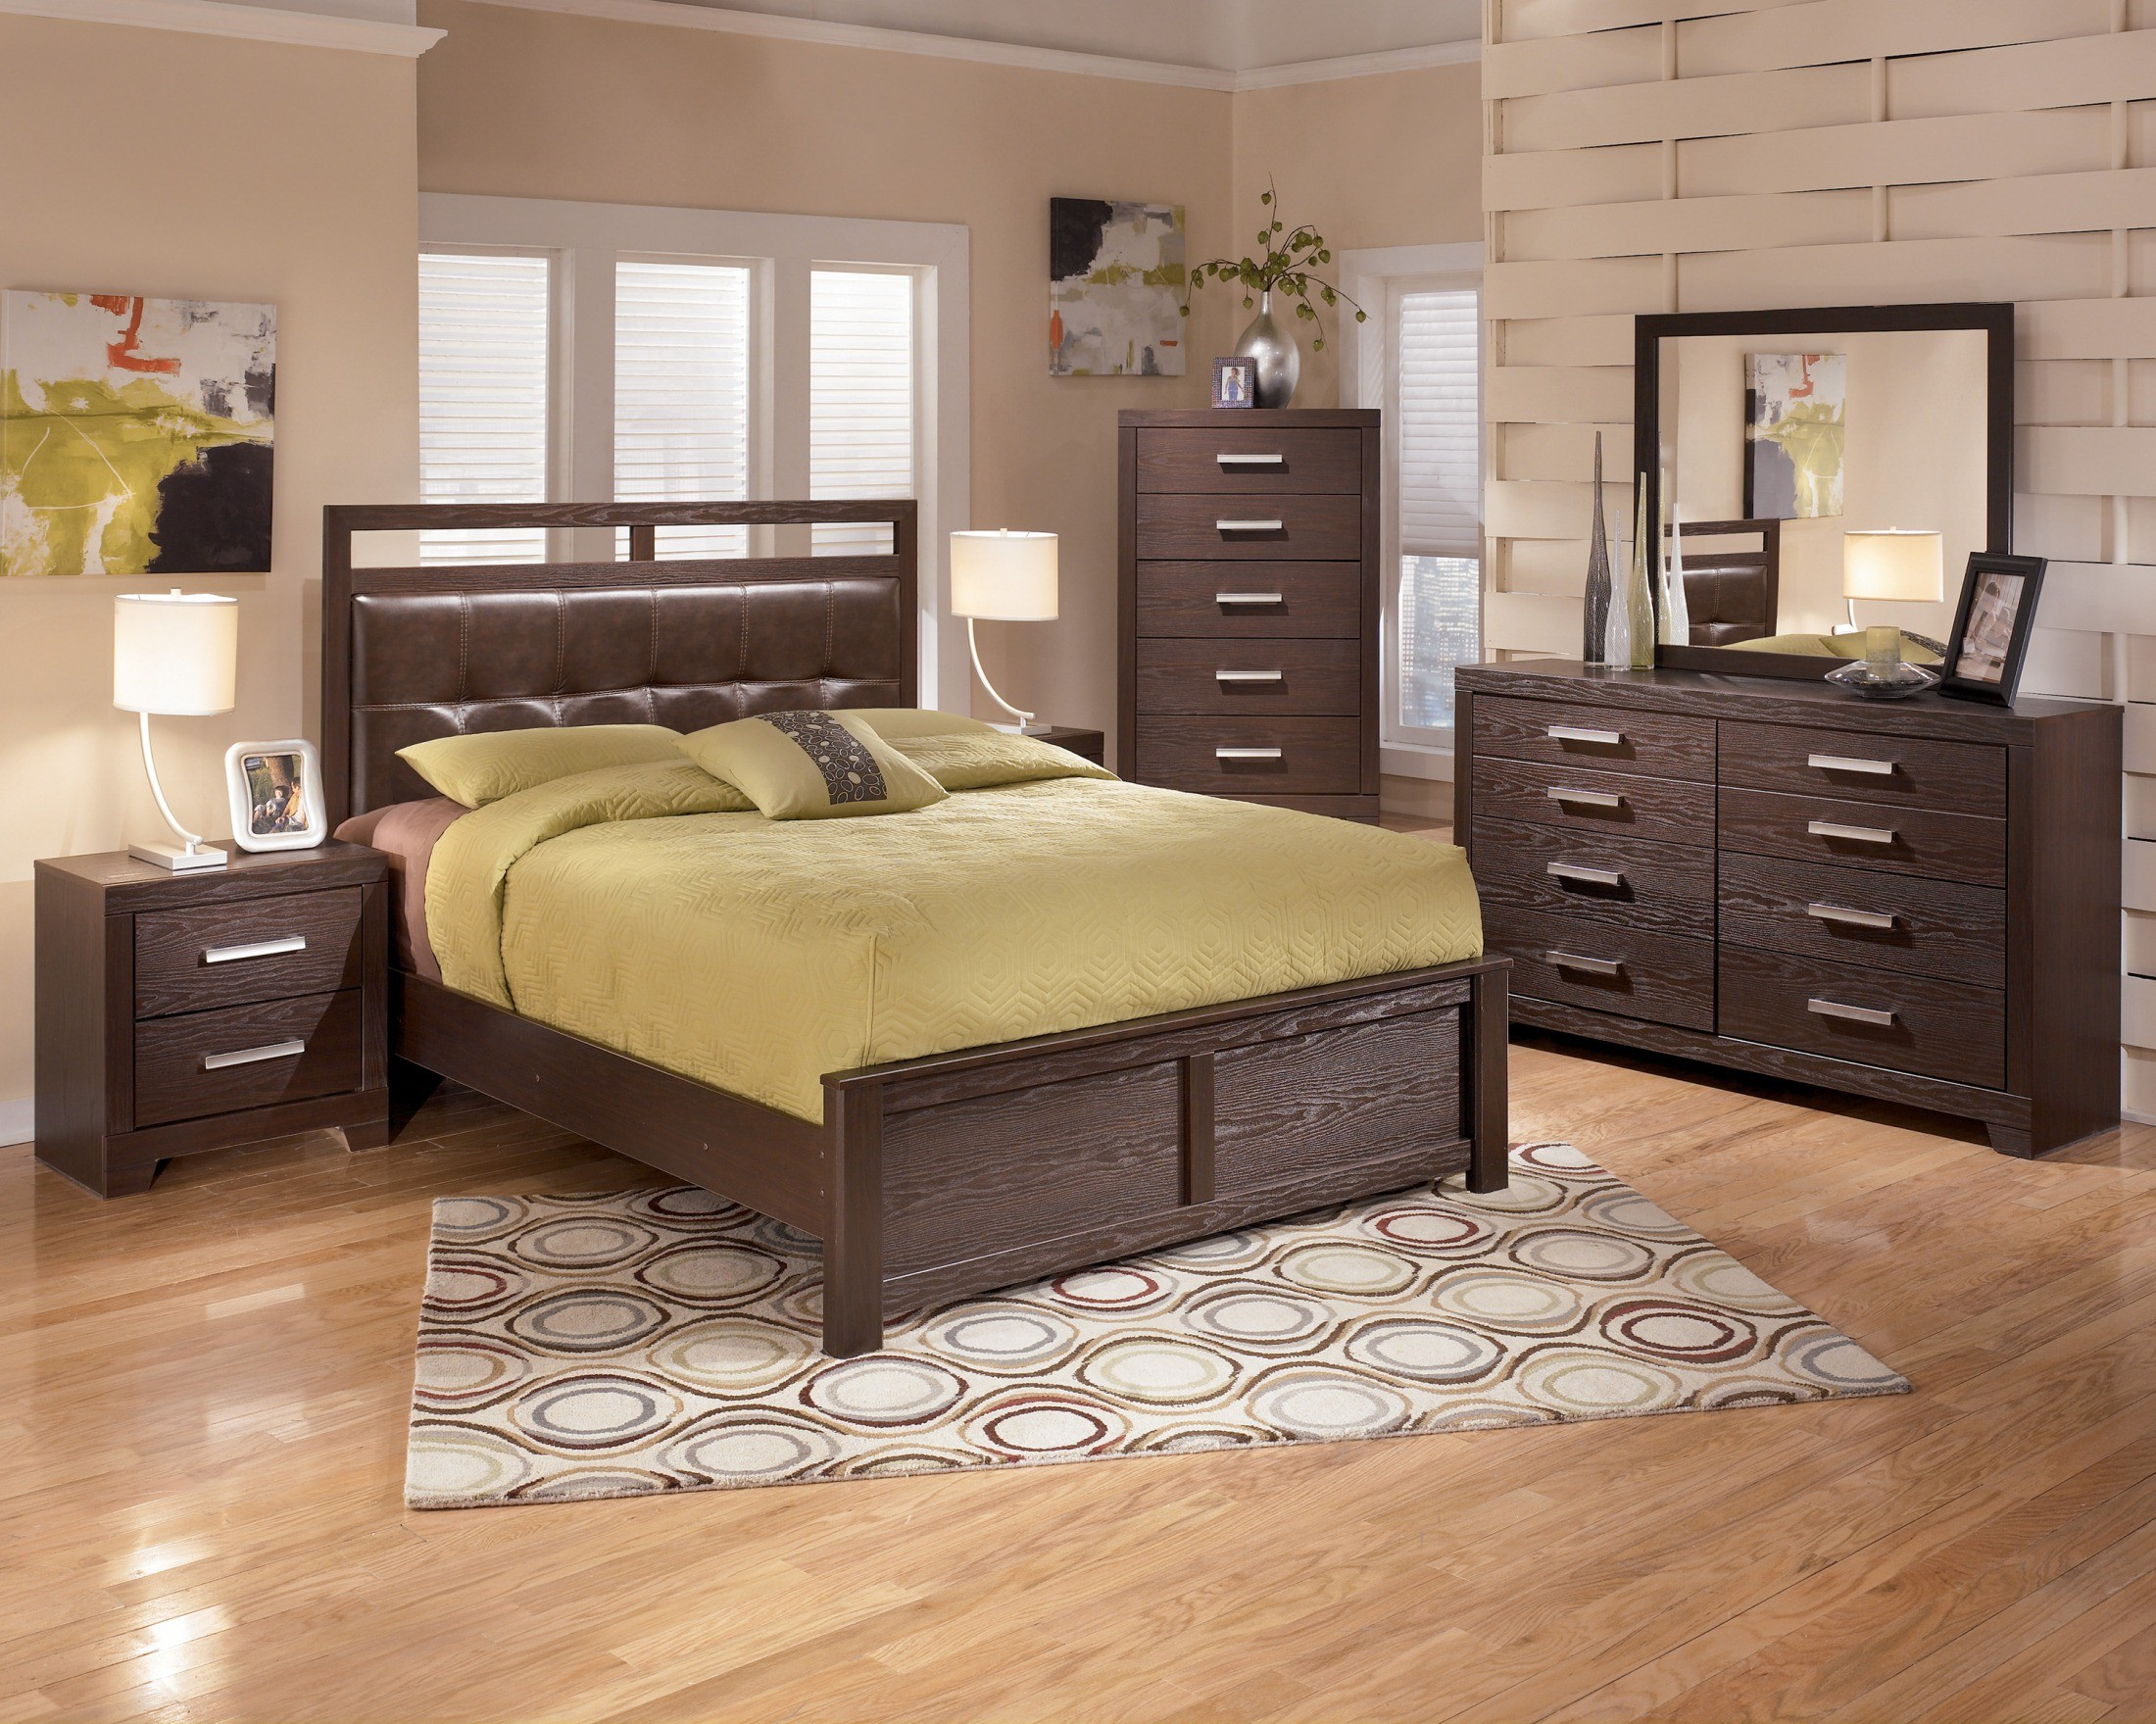 Aleydis upholstered panel bedroom set from ashley b165 57 54 96 coleman furniture for Starmore ashley furniture bedroom